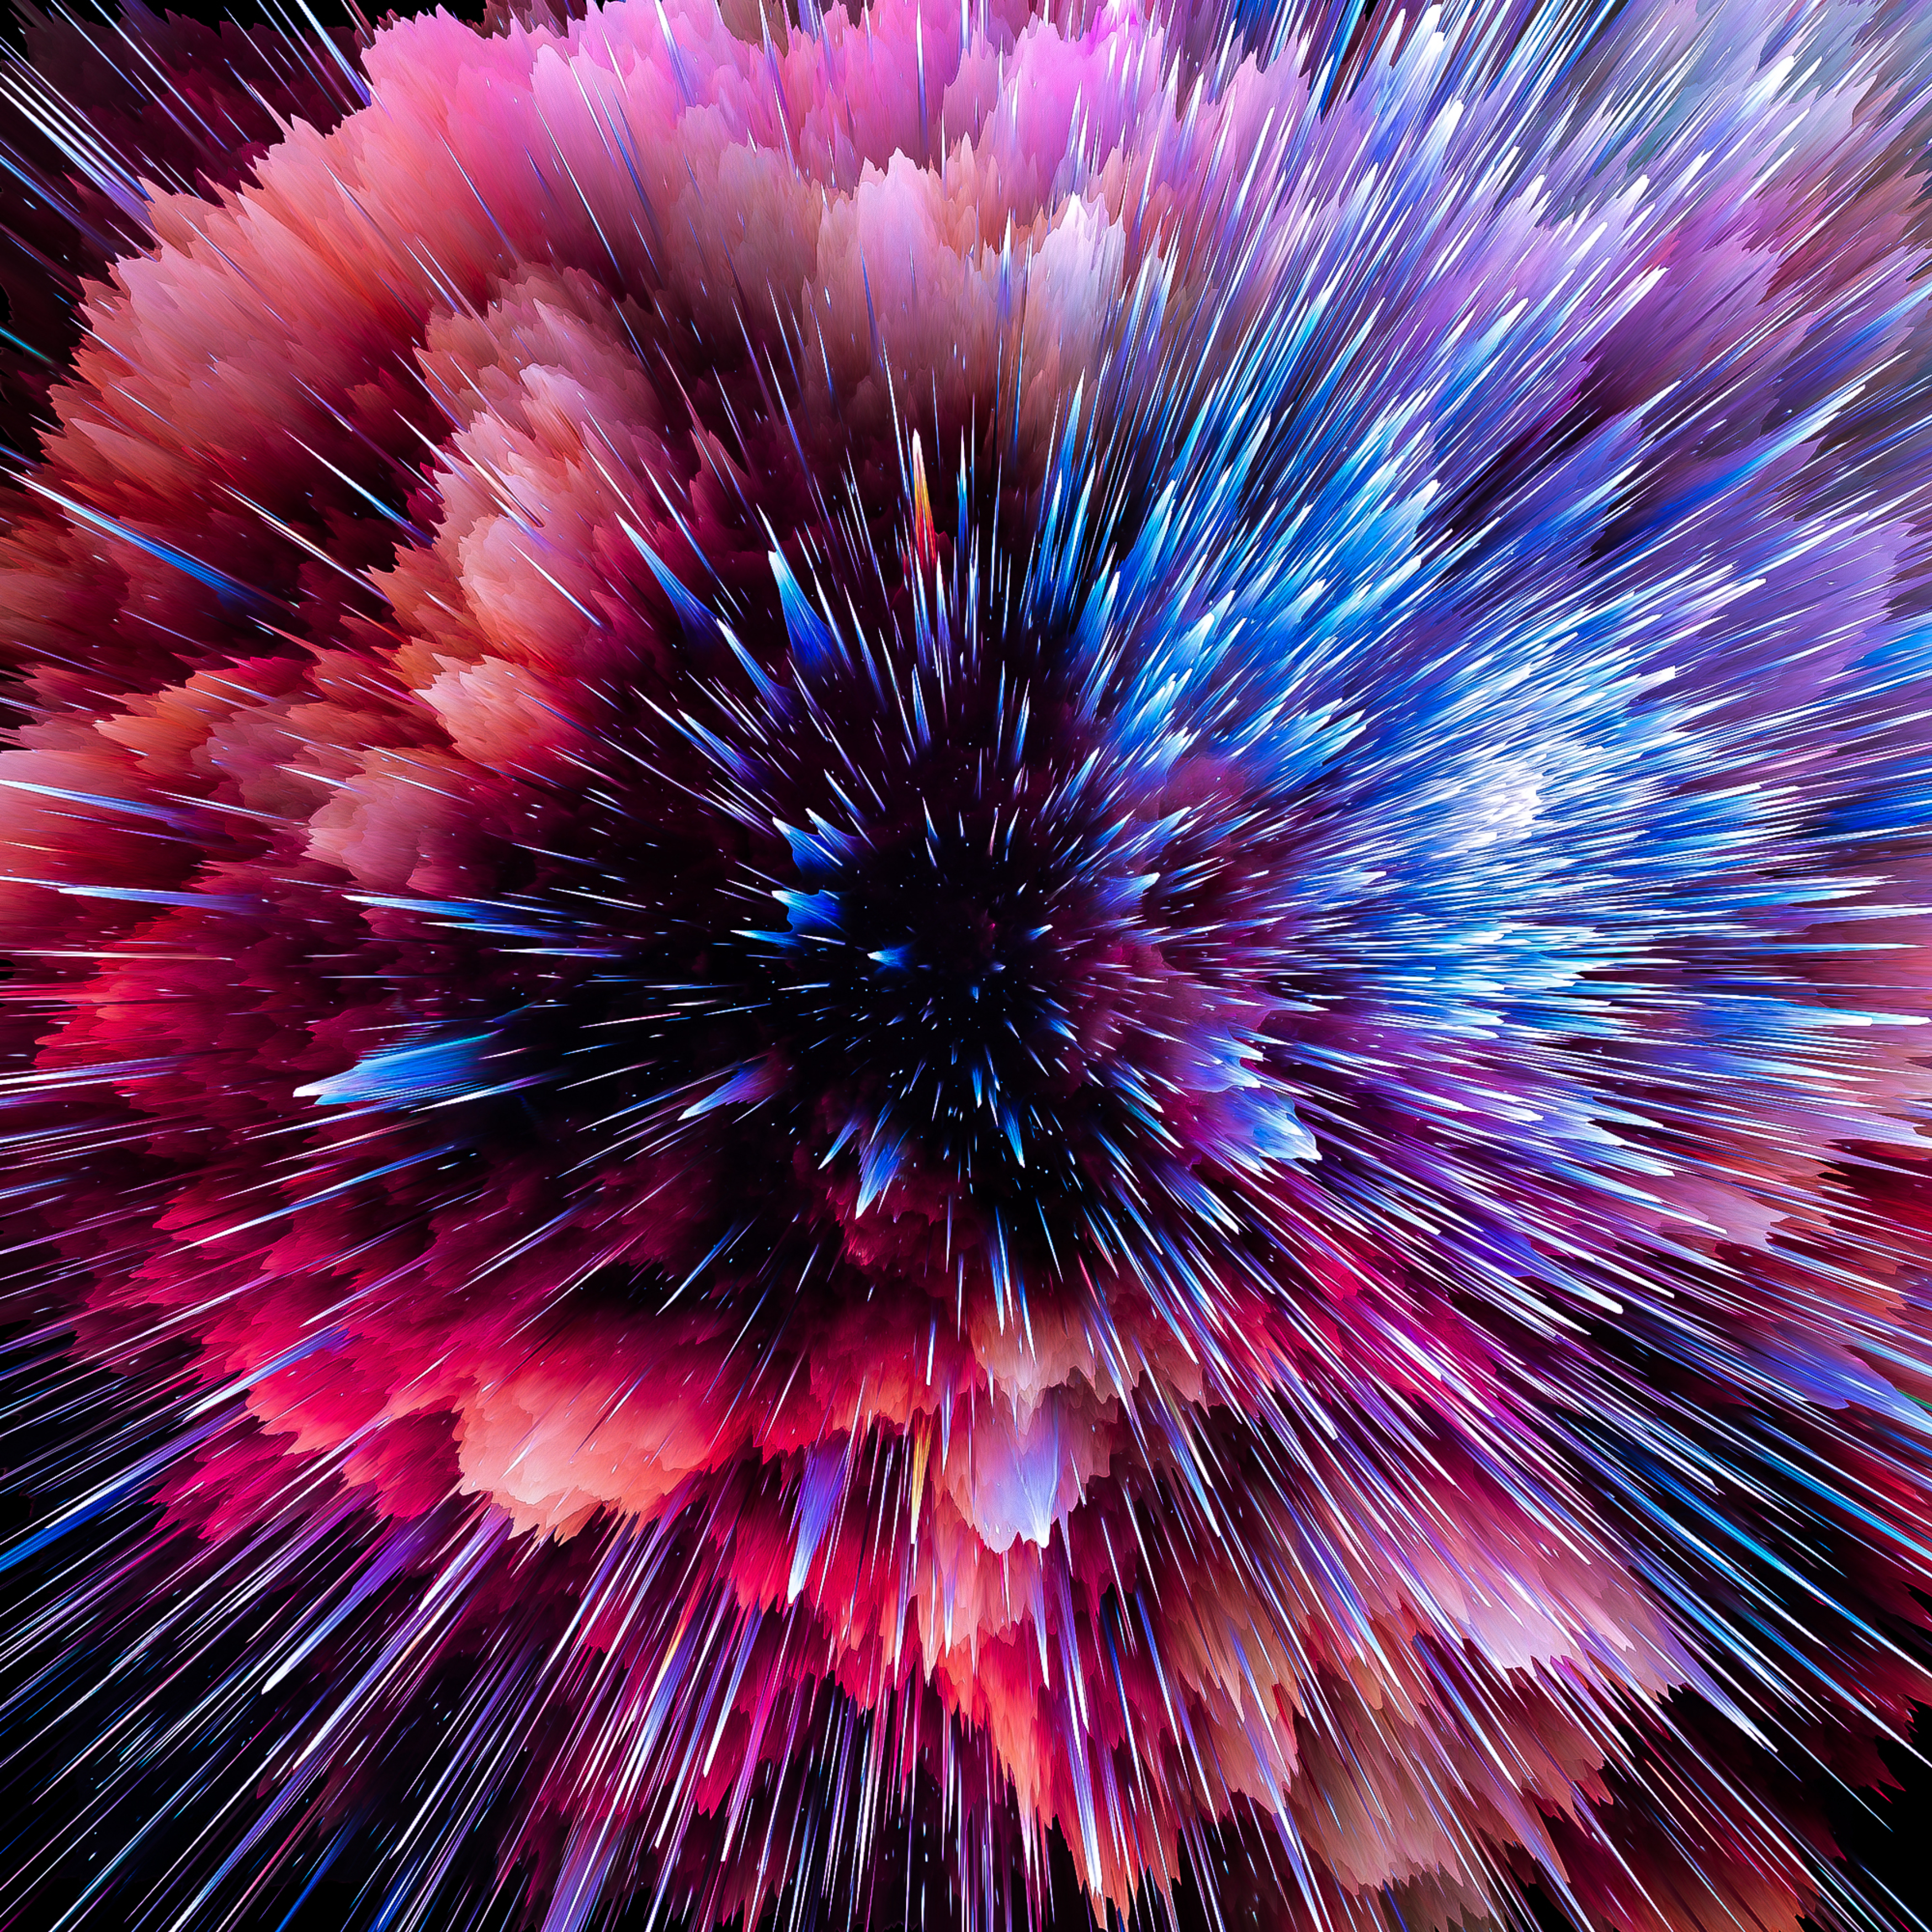 145534 download wallpaper 3D, Bright, Multicolored, Motley, Flash, Space, Cosmic, Shards, Smithereens, Scatter screensavers and pictures for free